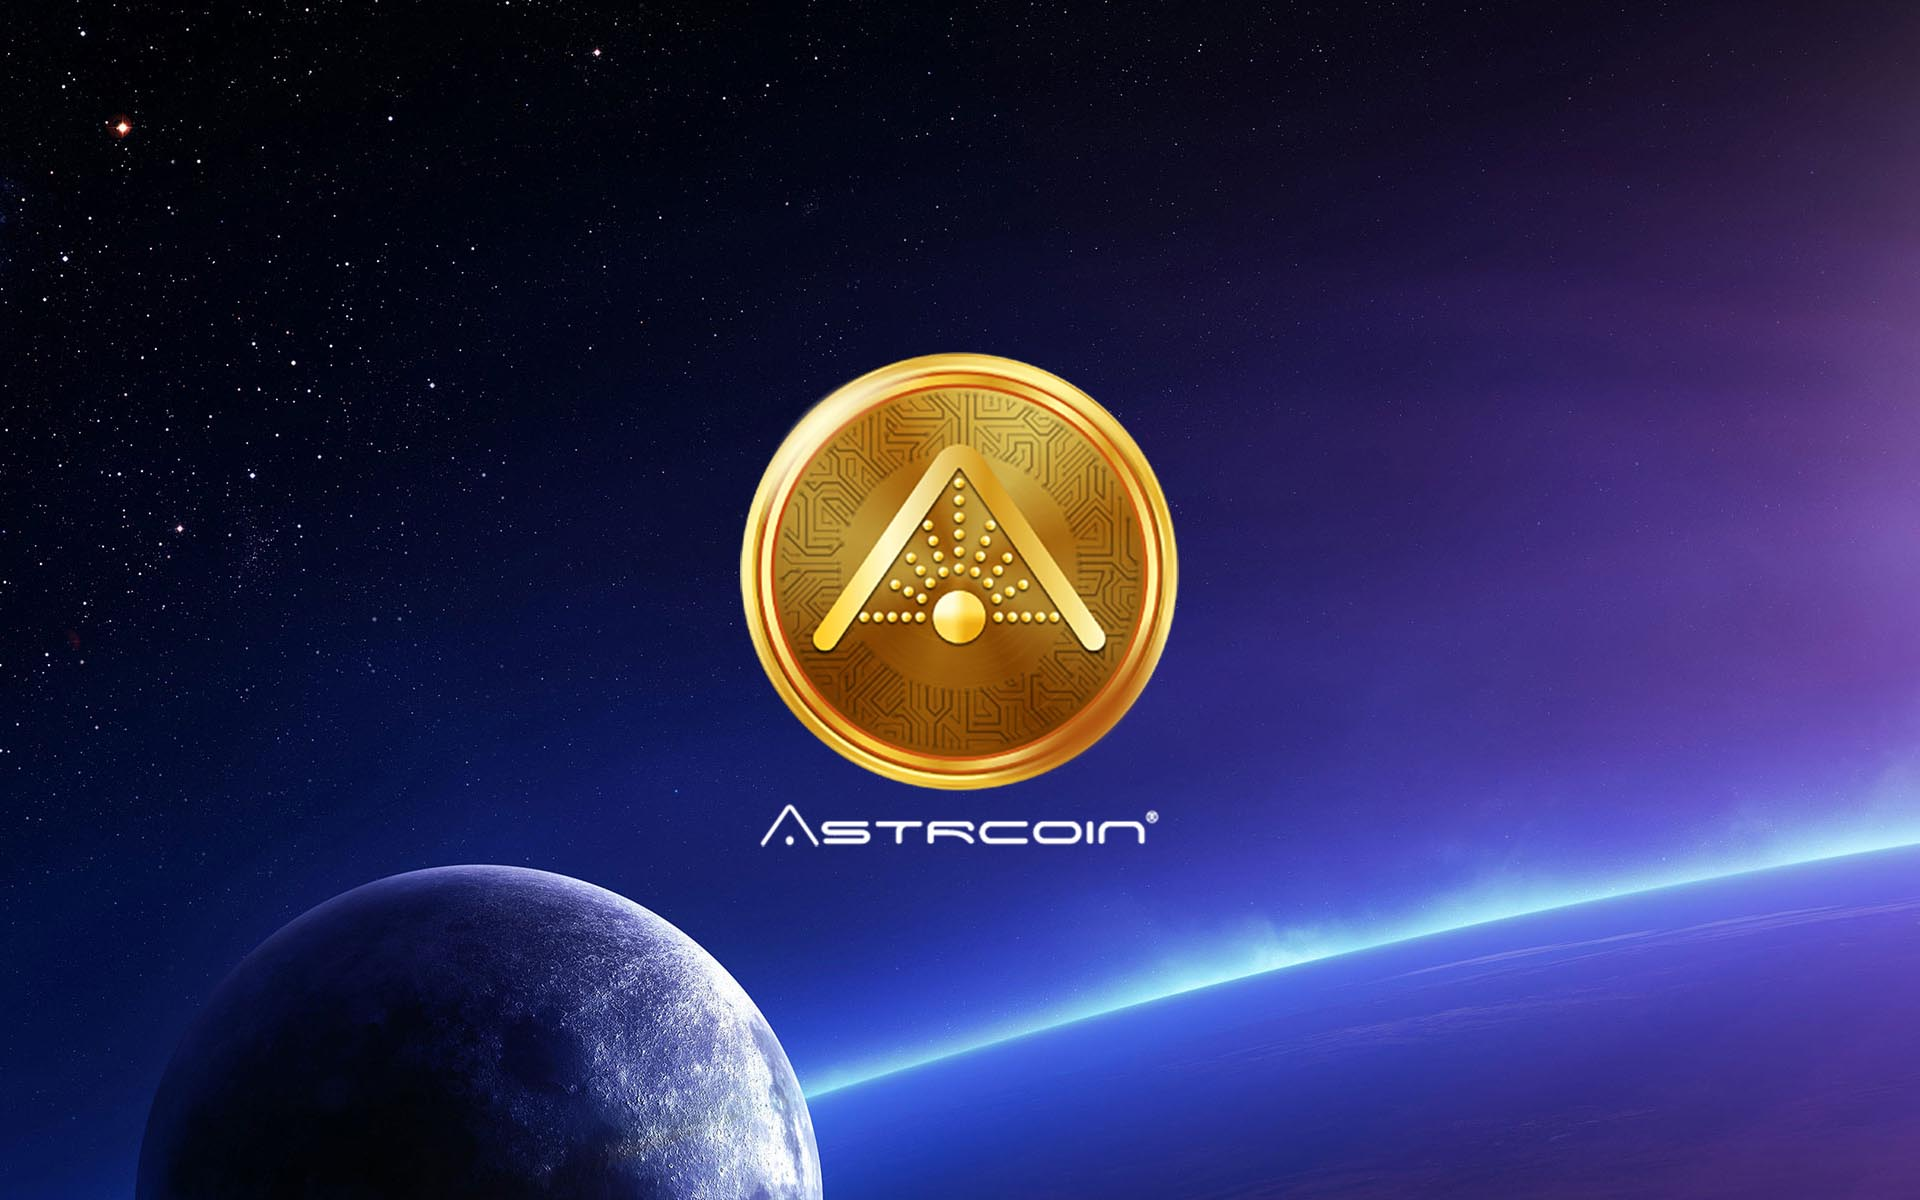 AstrCoin® Launches Groundbreaking ICO That Will Enhance Space Exploration Forever & Allow Anyone To Lay Claim To Asteroids Worth Billions In Natural Resources